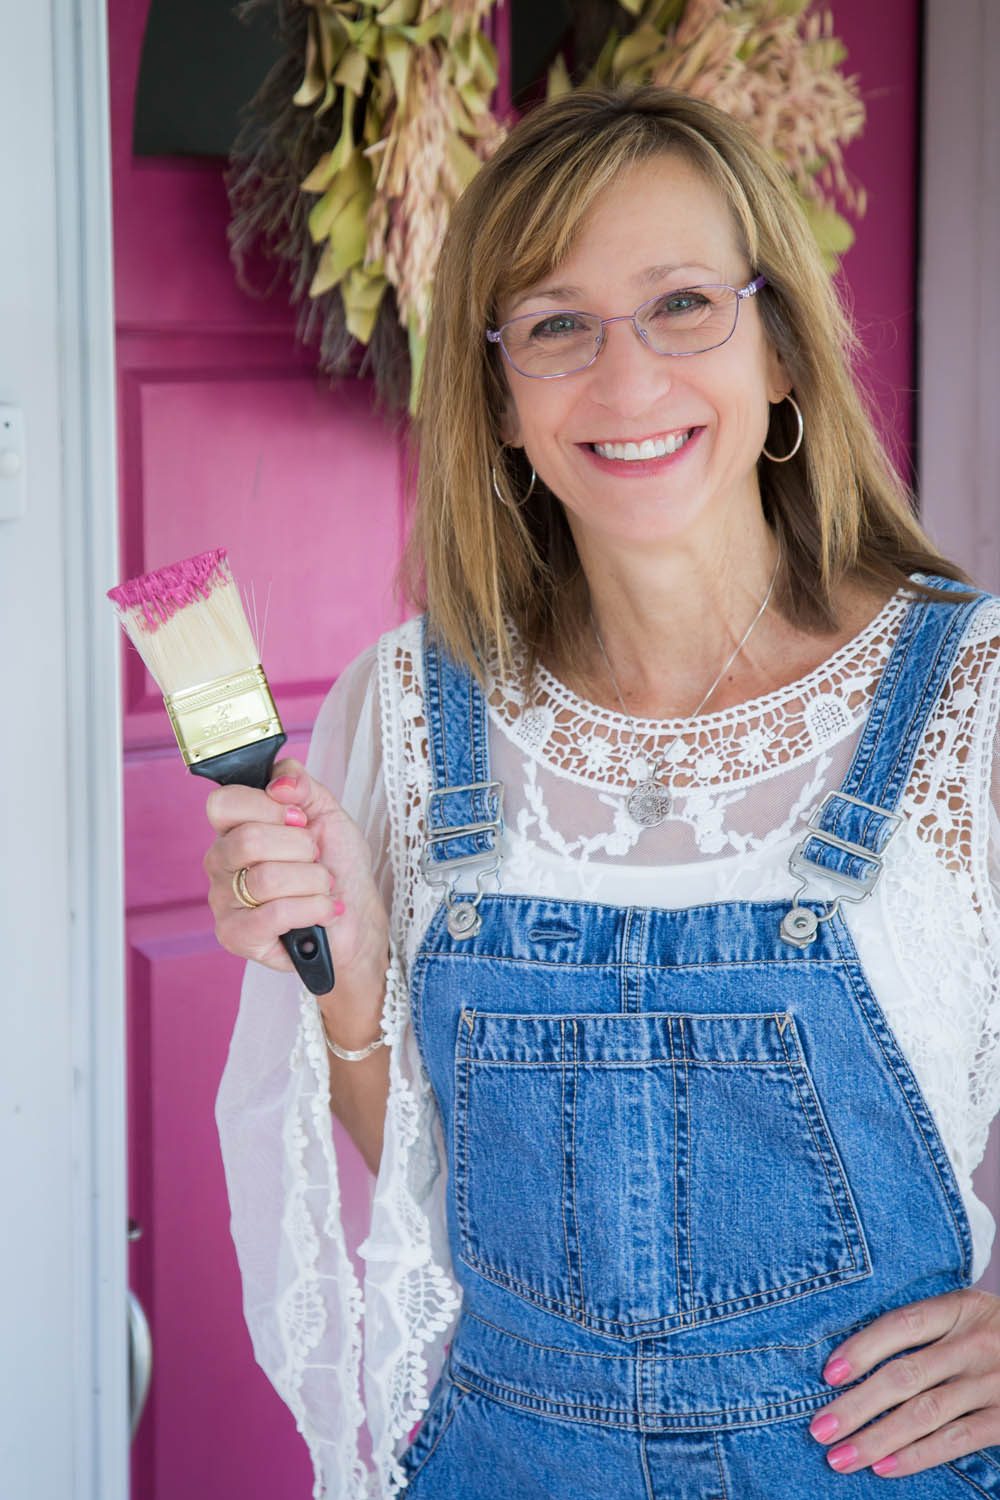 Ashley Quinn in front of pink door with paintbrush